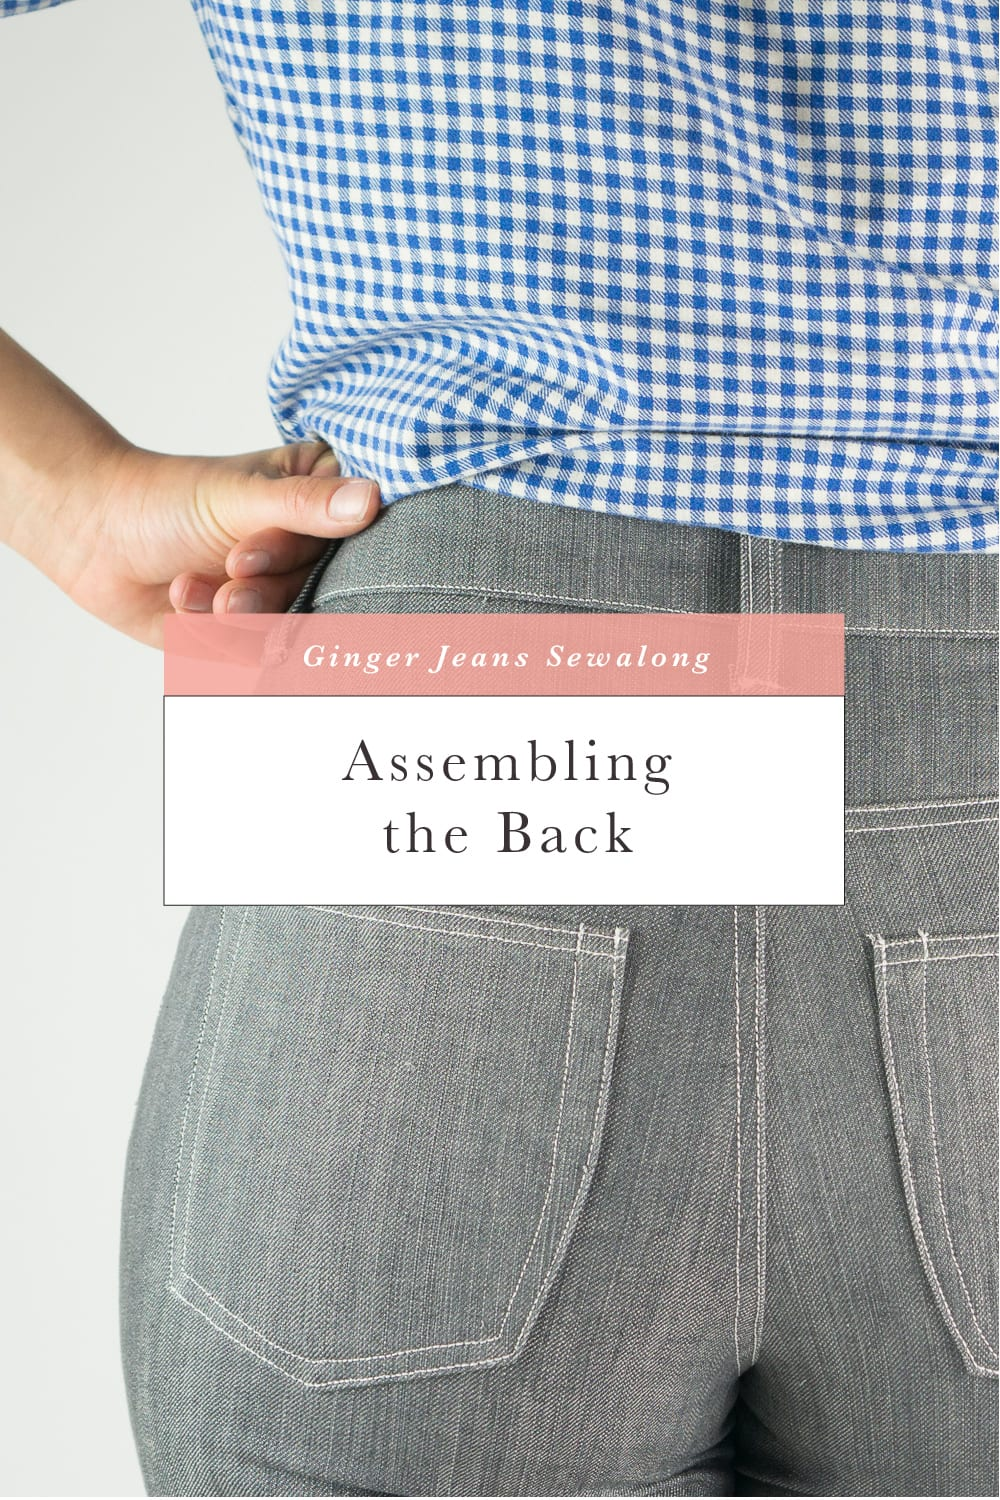 Assembling the back jeans // Ginger Jeans Sewalong // Closet Case Patterns